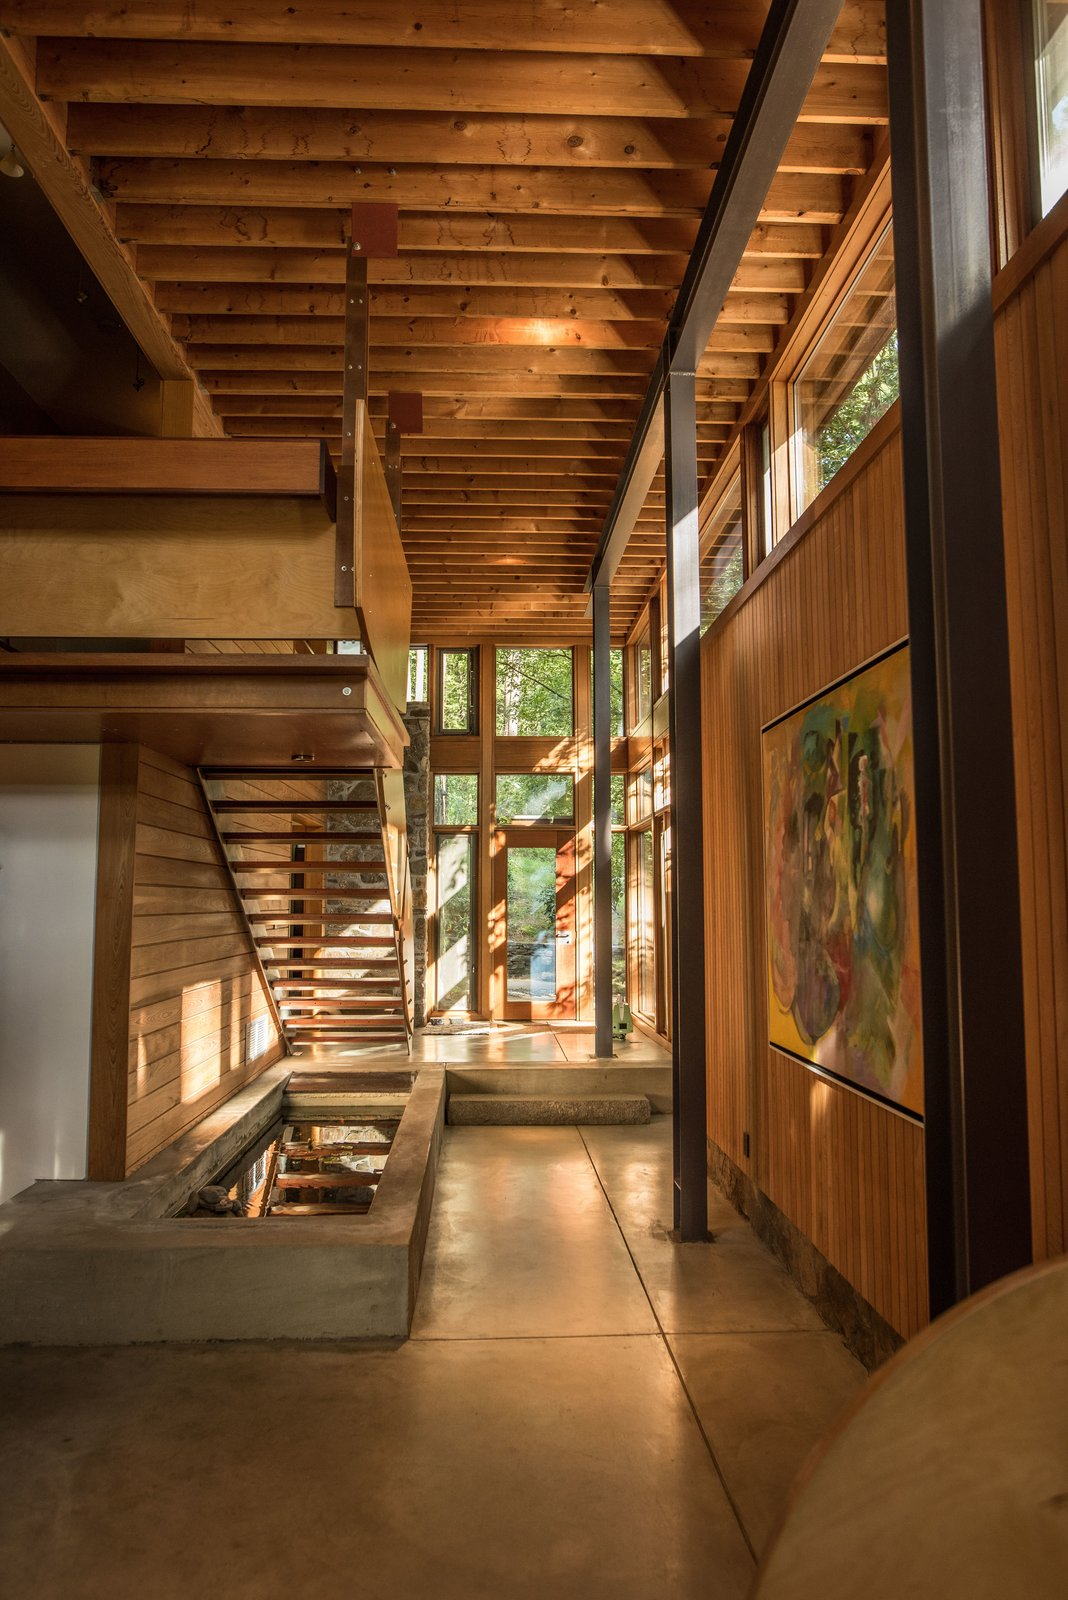 Hallway and Concrete Floor The new spaces recall the original design with their use of natural materials like wood and stone.  Best Photos from This Updated Breuer House Could Be Yours for a Cool $2.3 Million